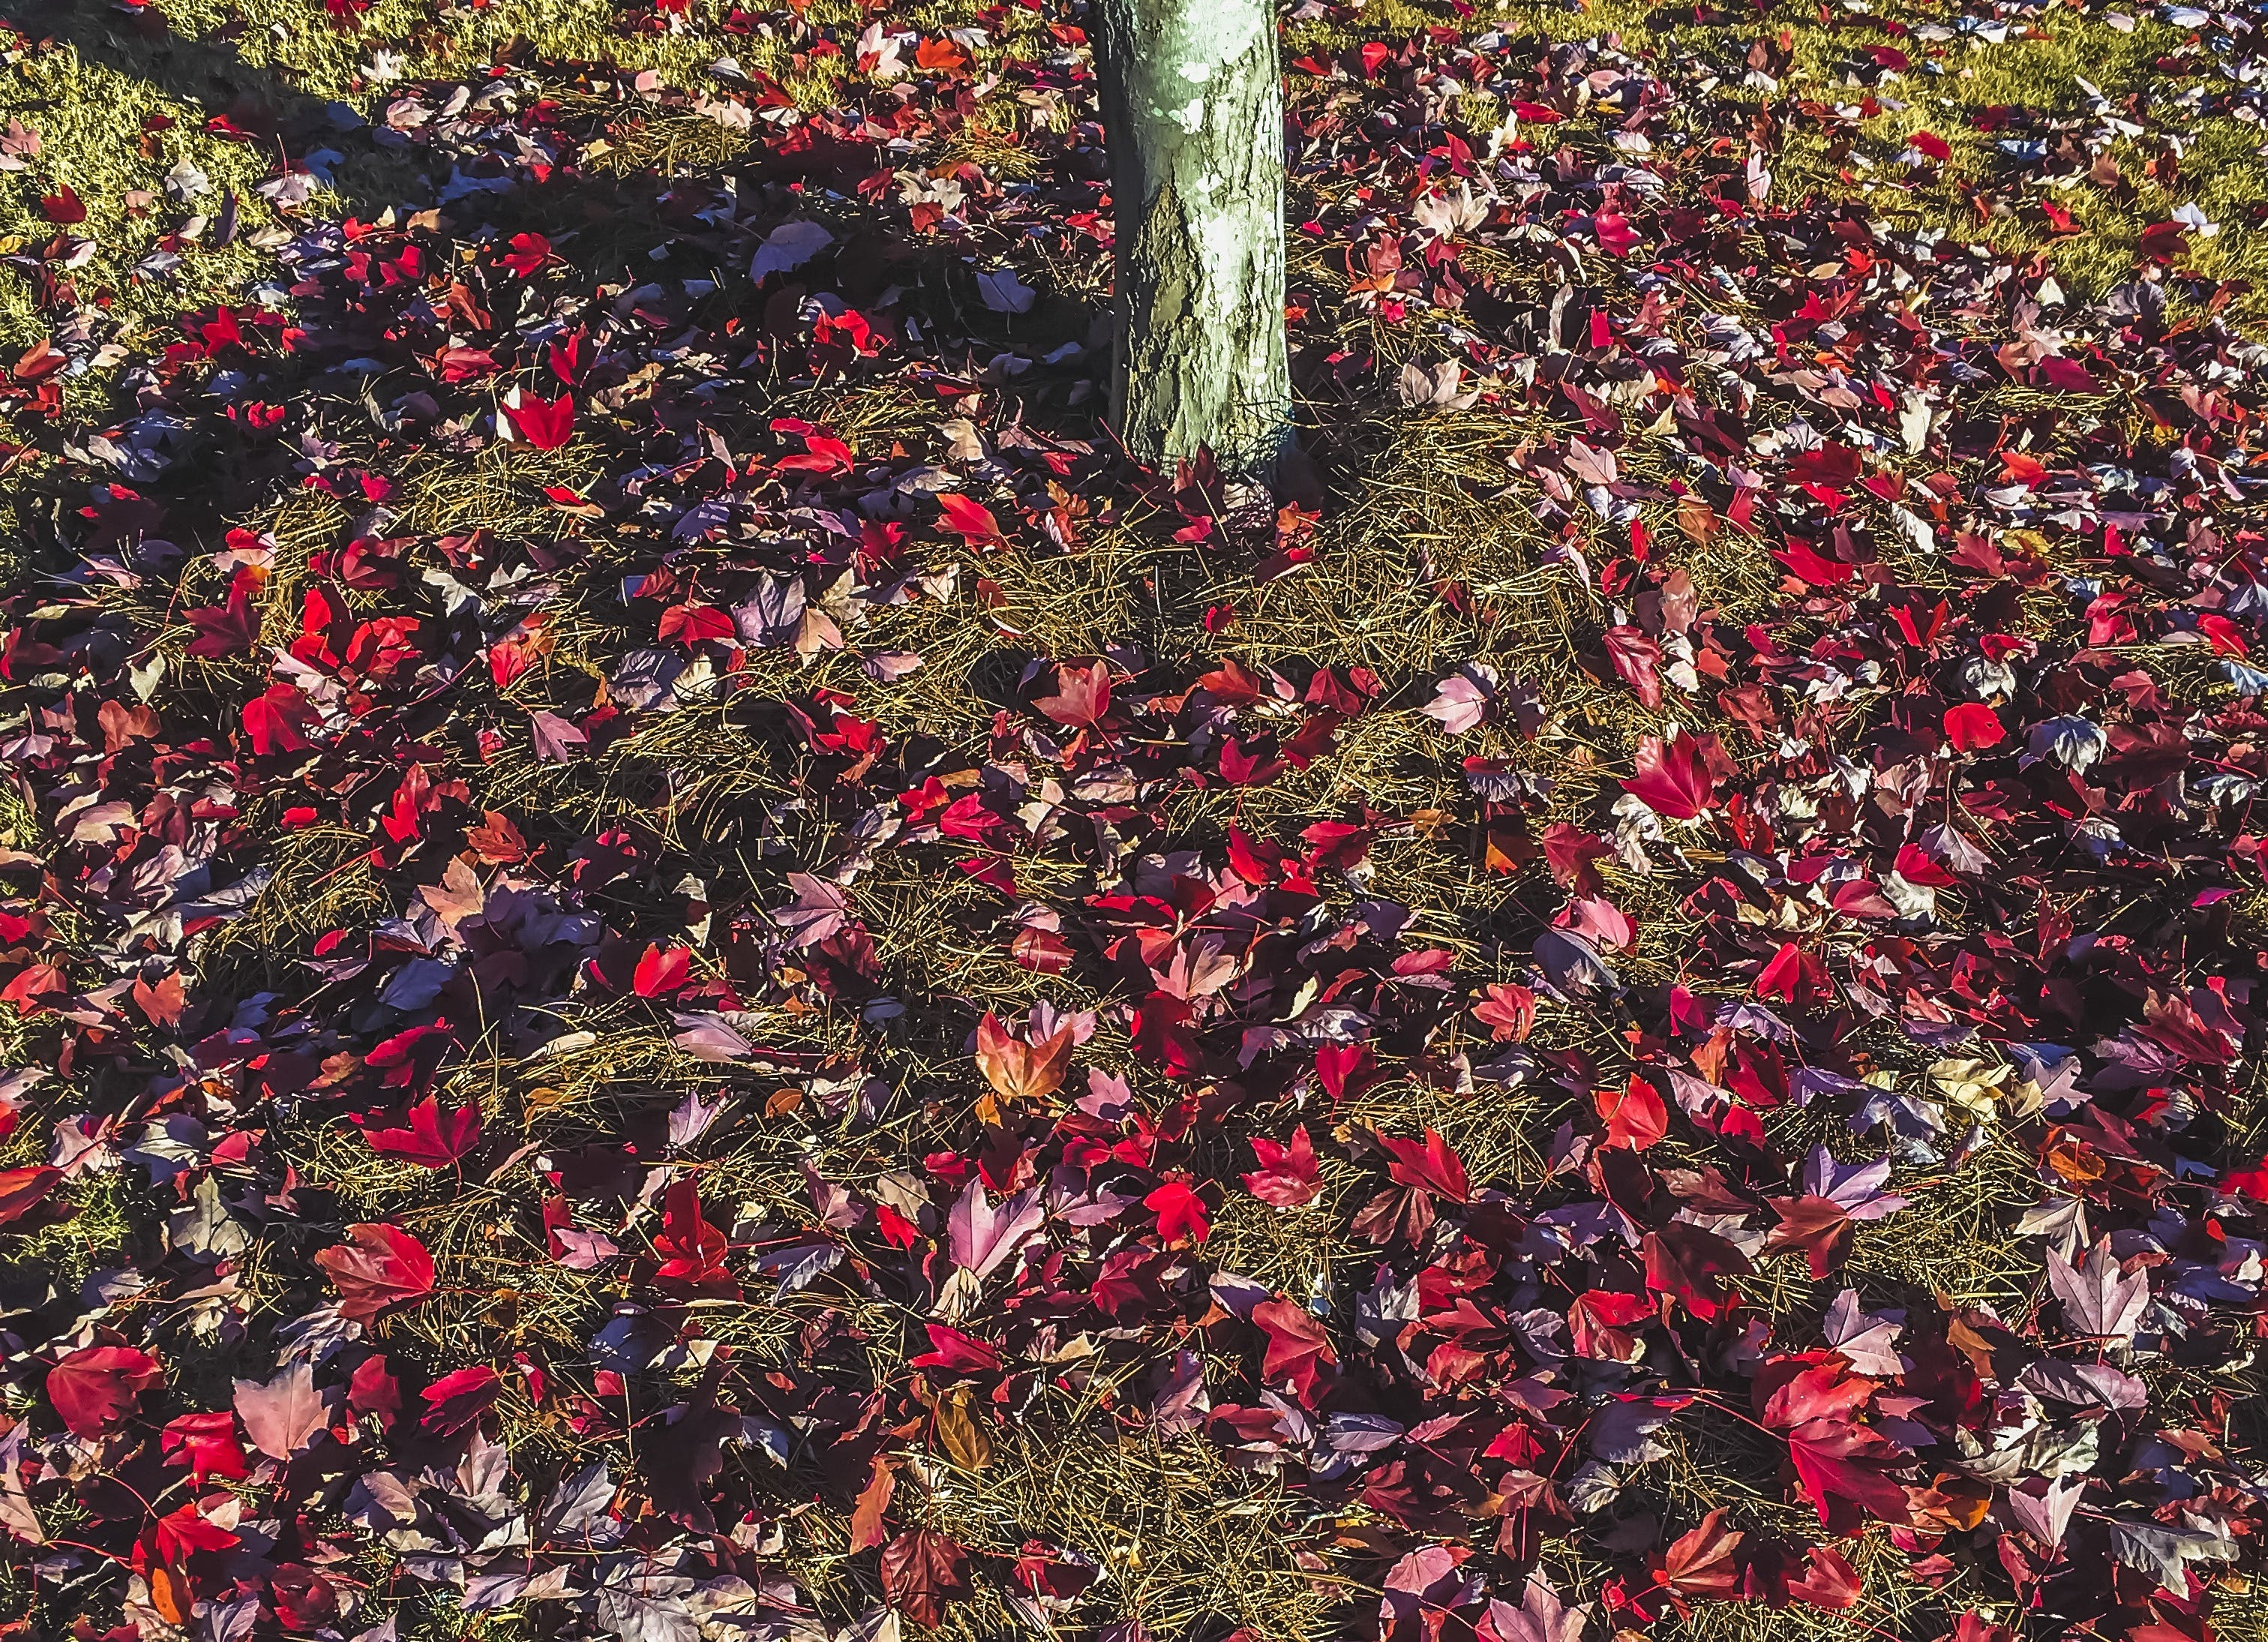 Free stock photo of fallen leaves, nature, photography, red leaves